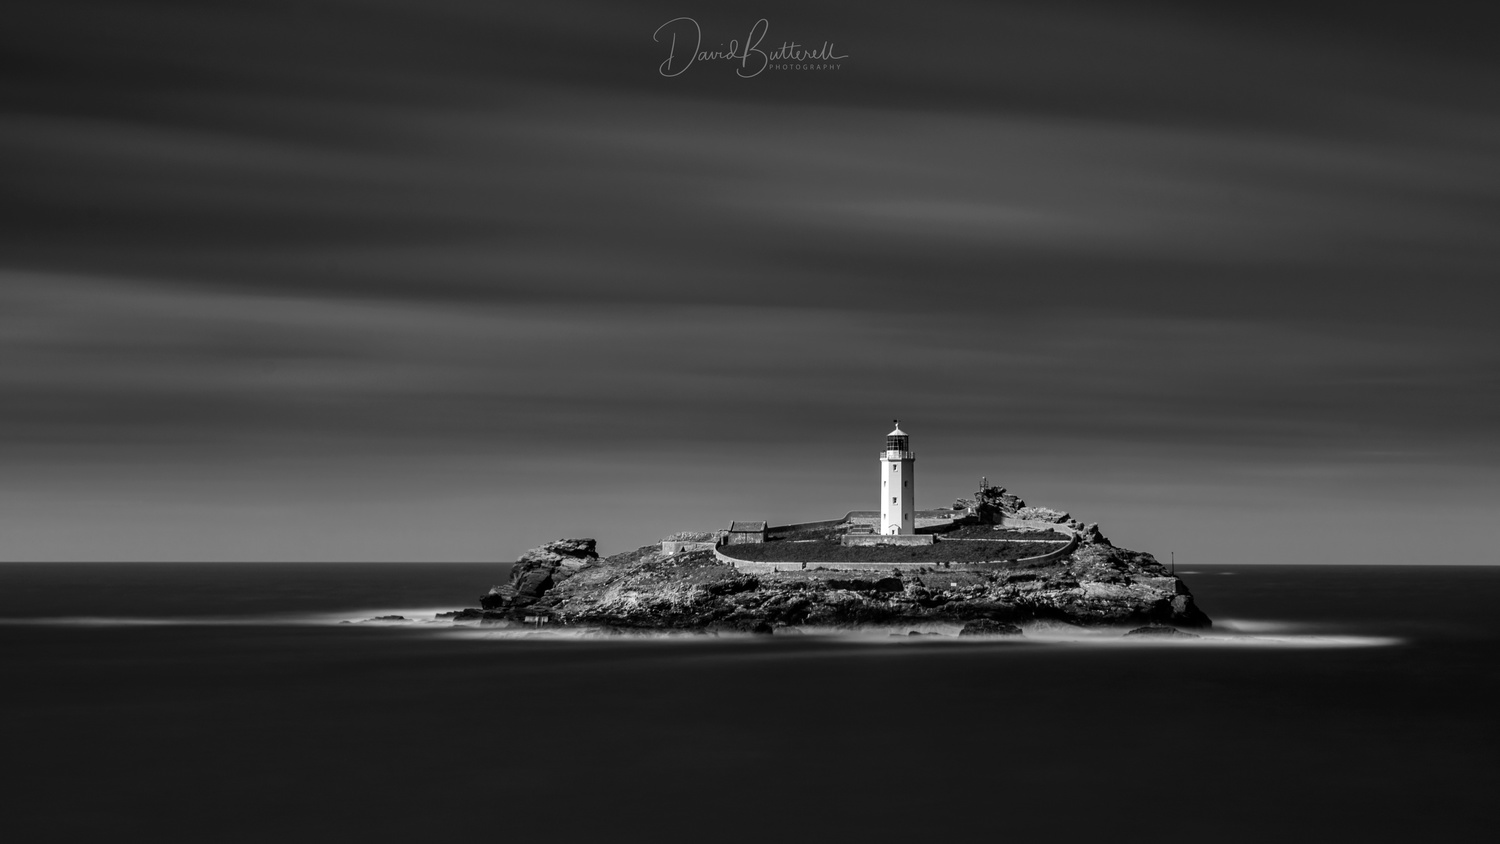 Godrevy Lighthouse by David Butterell